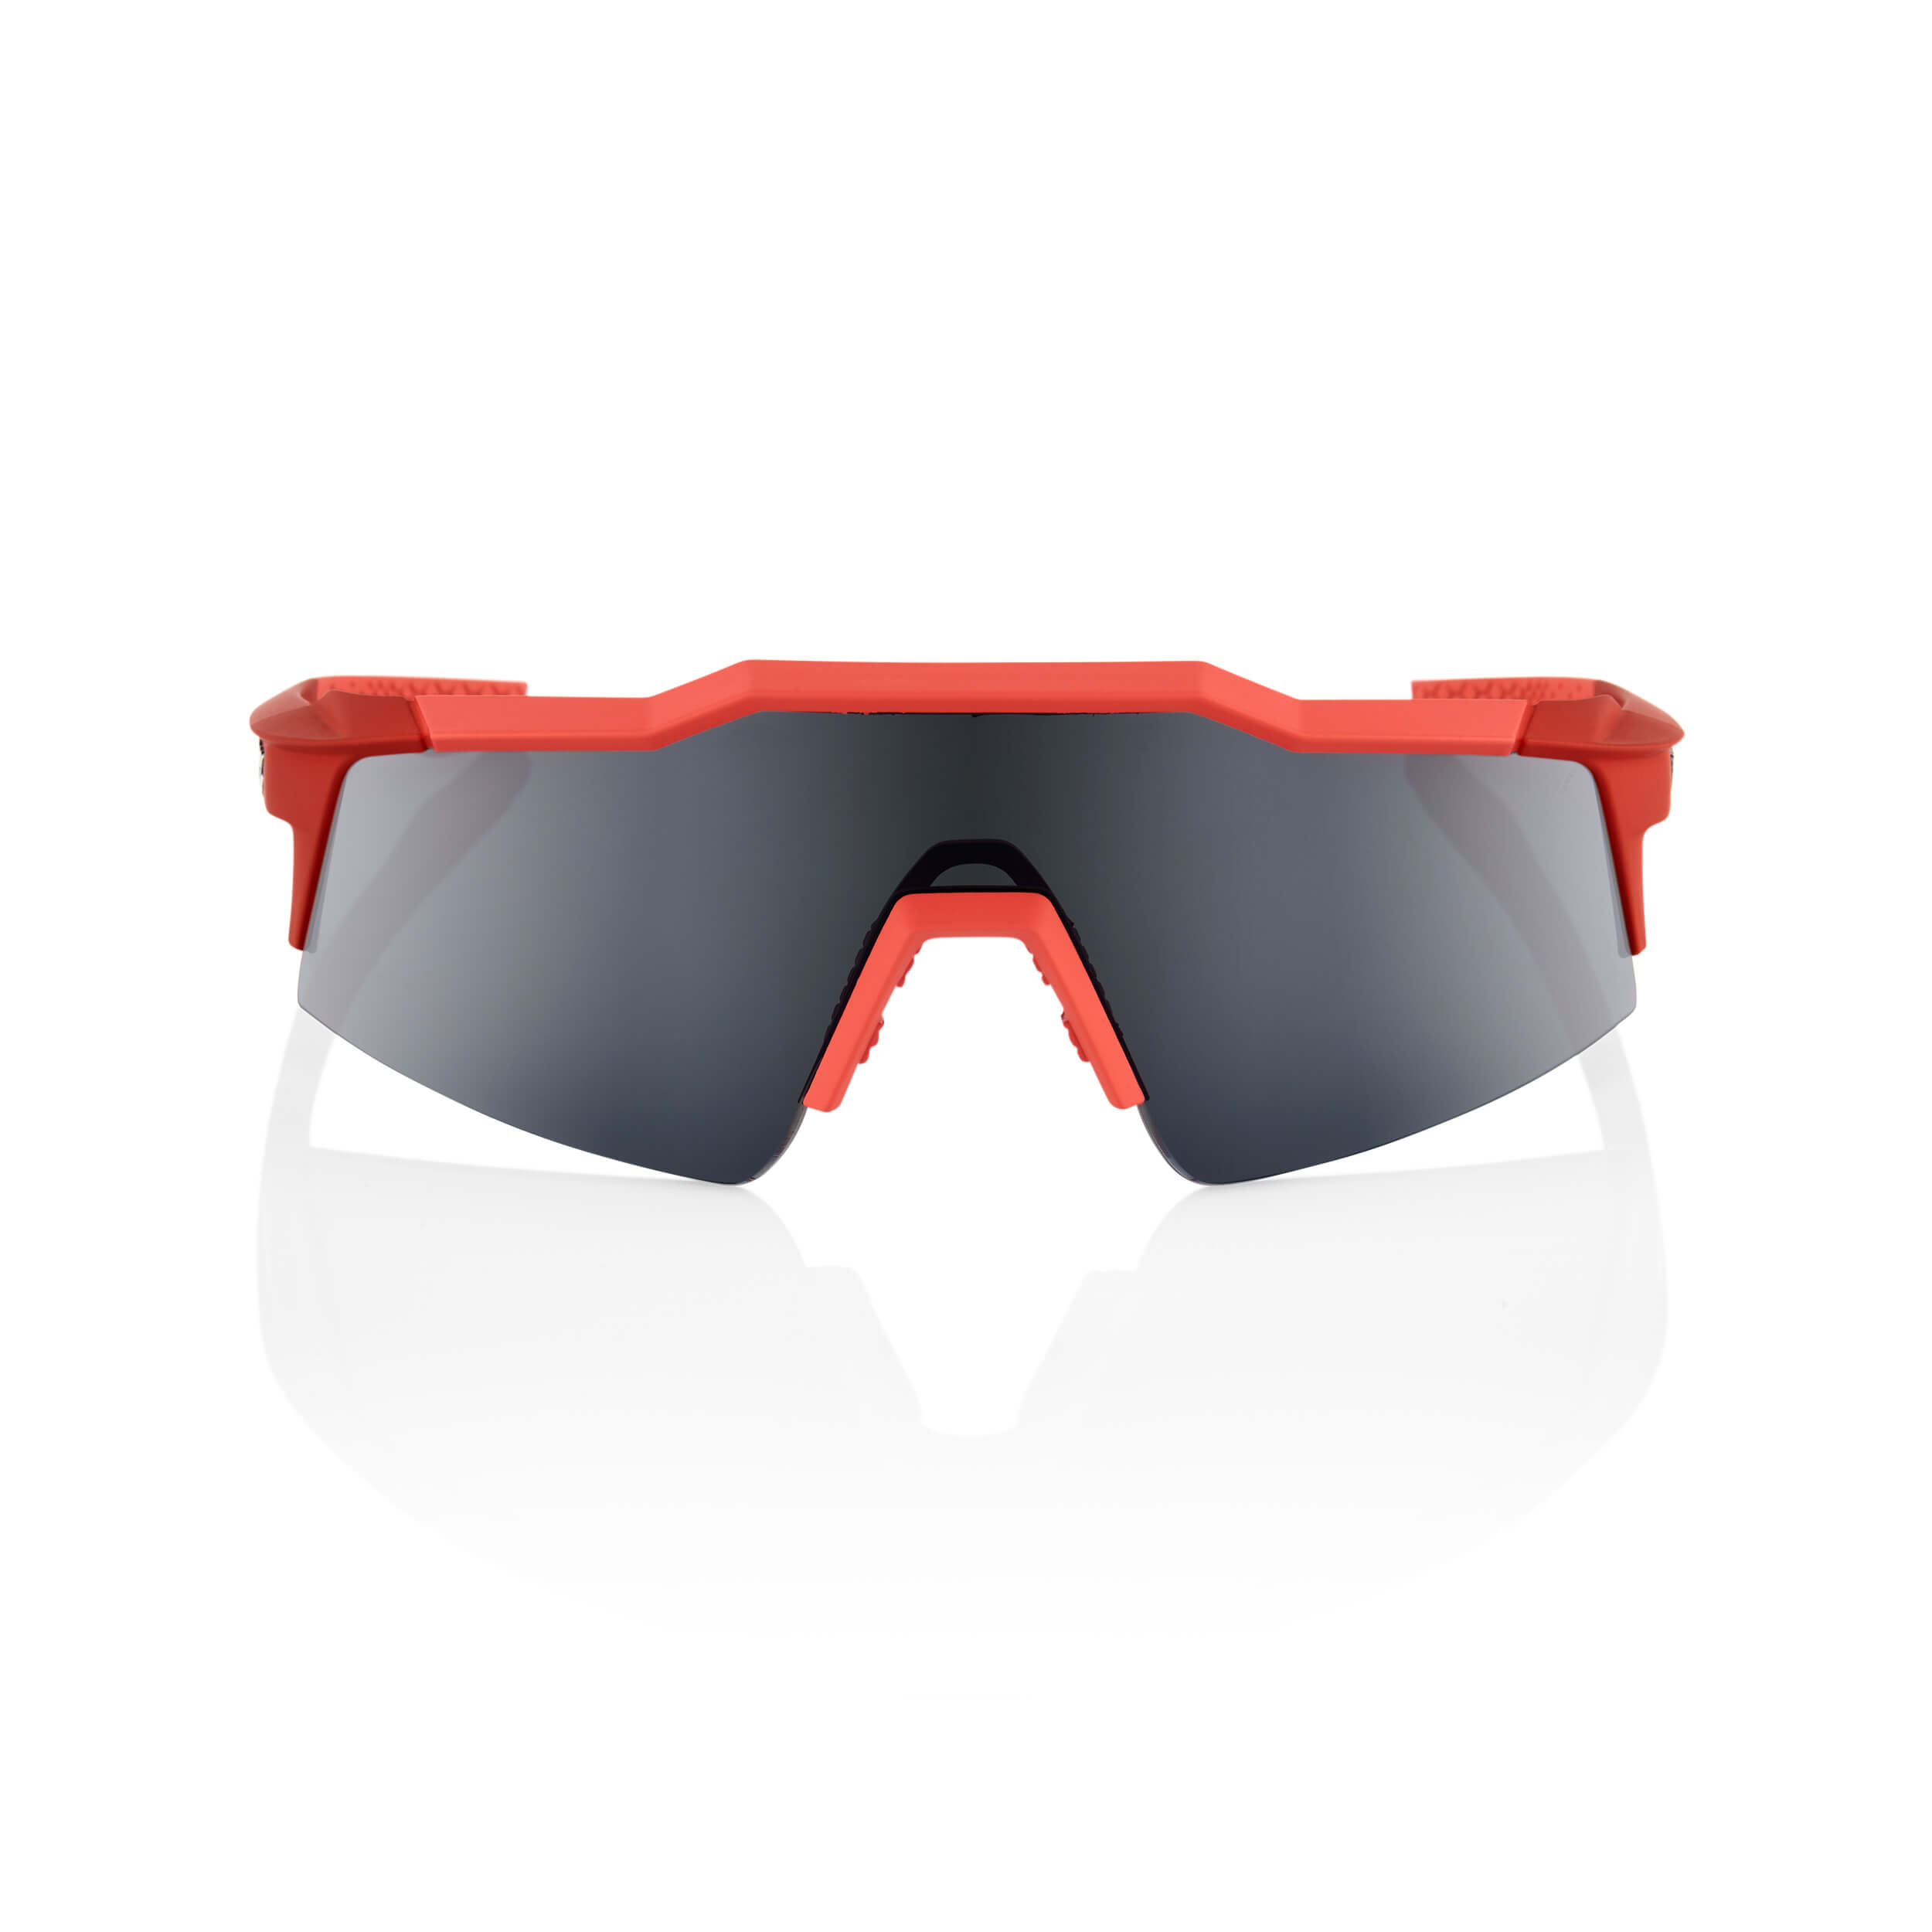 SPEEDCRAFT SL – Soft Tact Coral – Smoke Lens